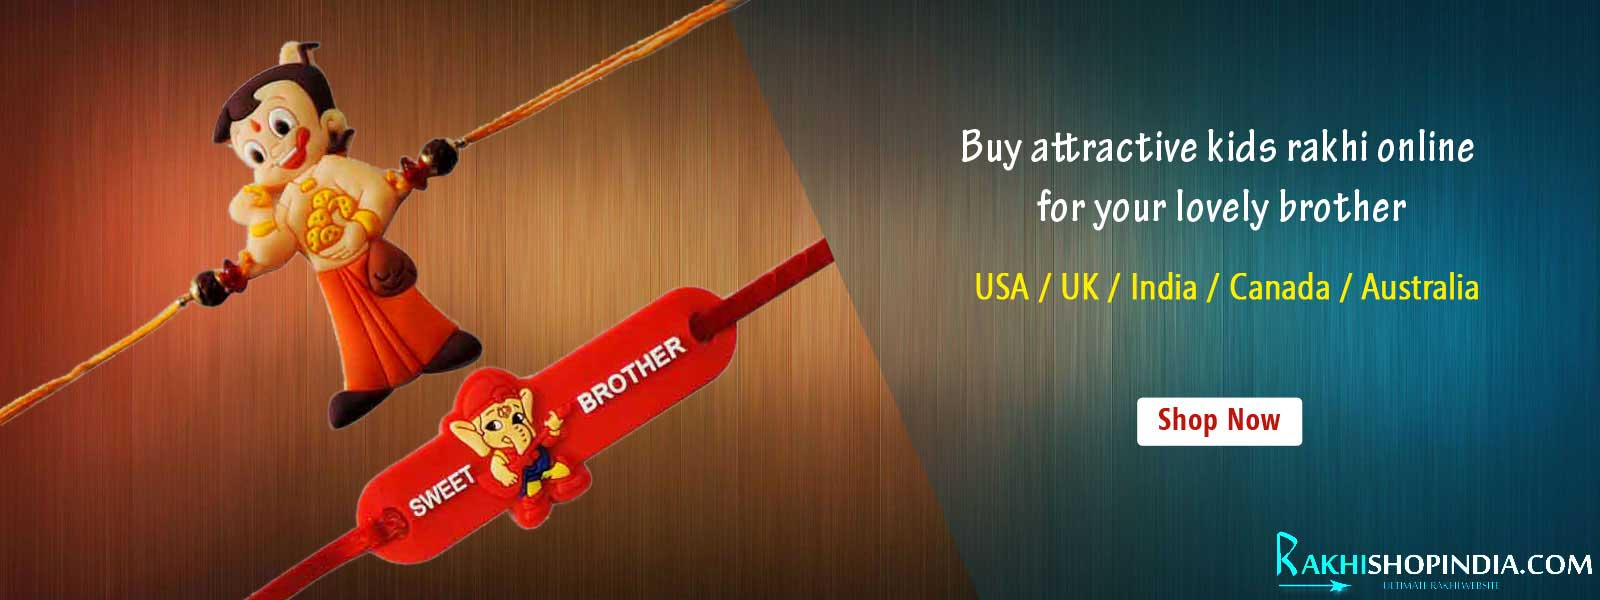 stylish rakhi,online rakhi send,Rakhi Shop India,send rakhi online,send rakhi,send online rakhi,buy rakhi,rakhi shopping